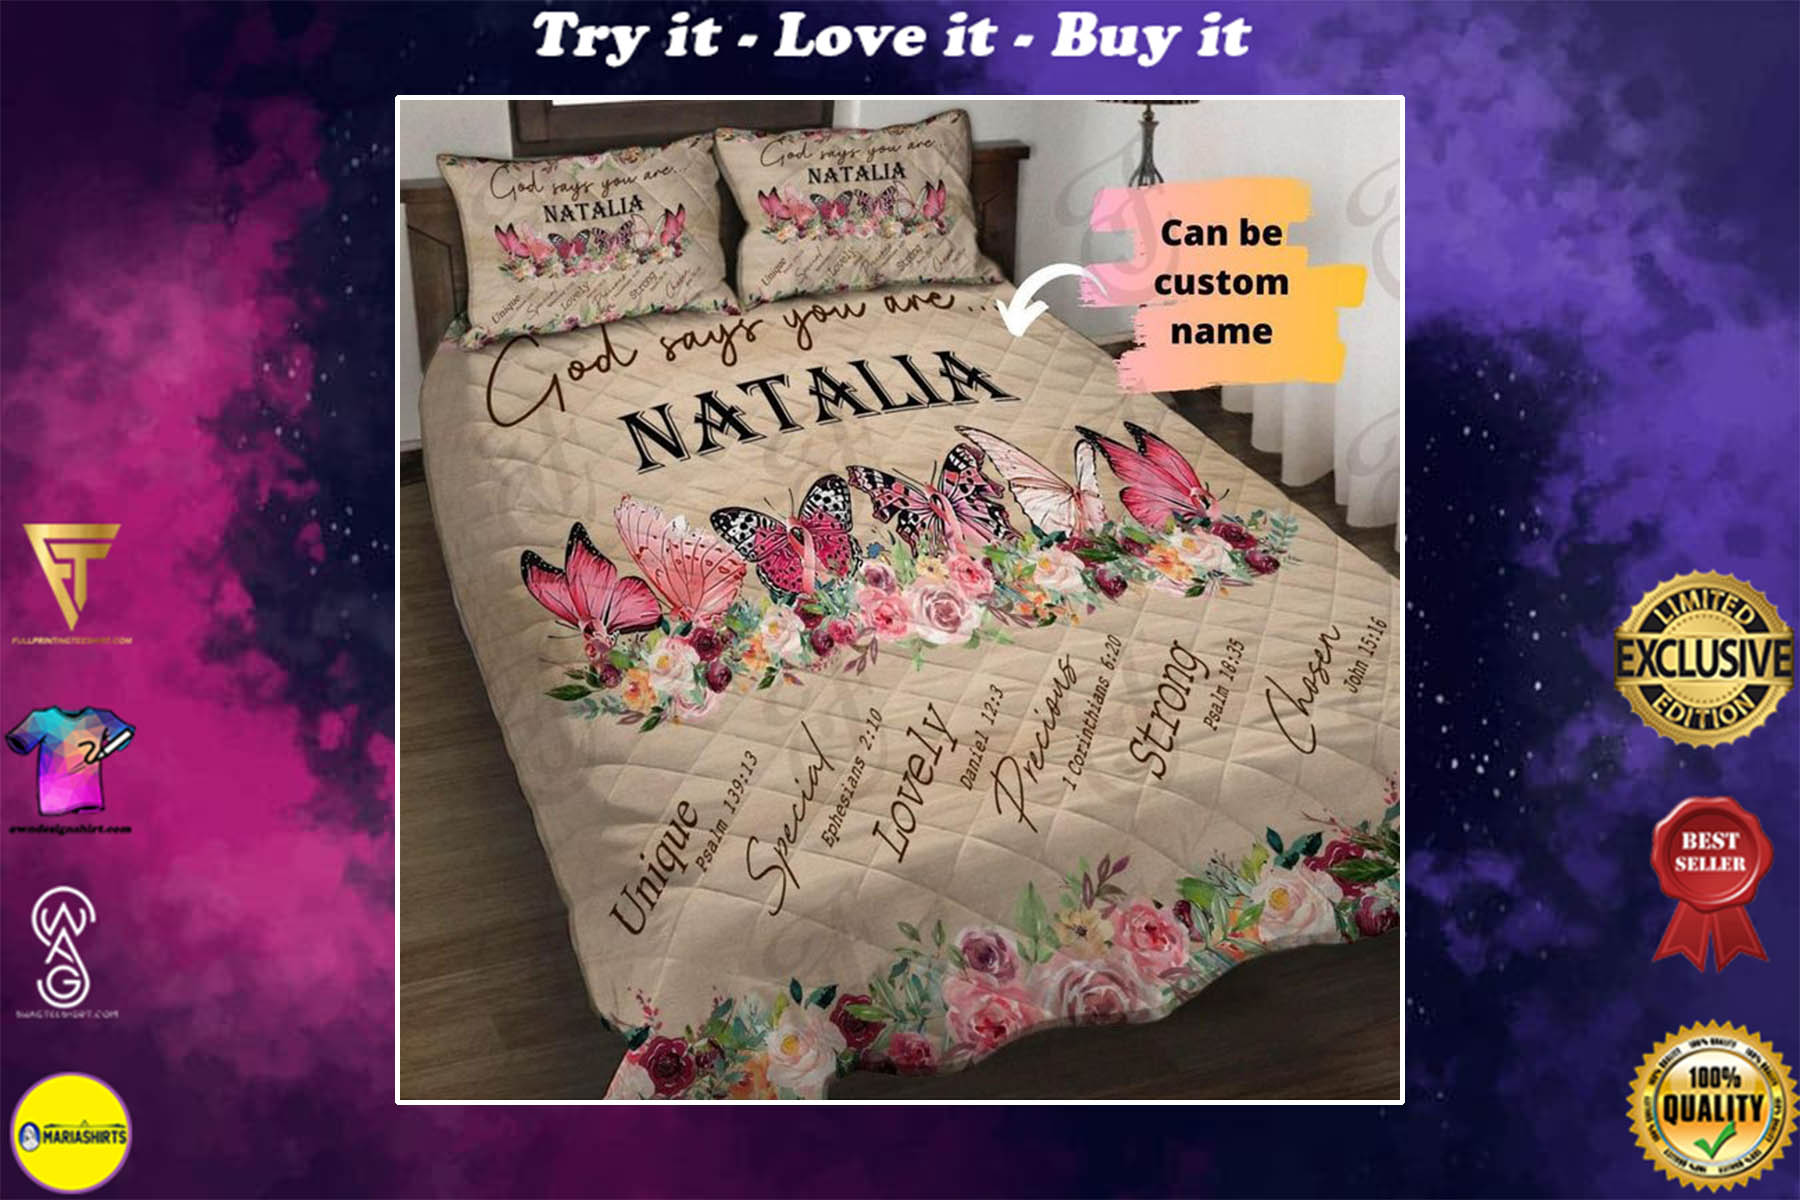 [special edition] custom name God says you are butterfly bedding set - maria